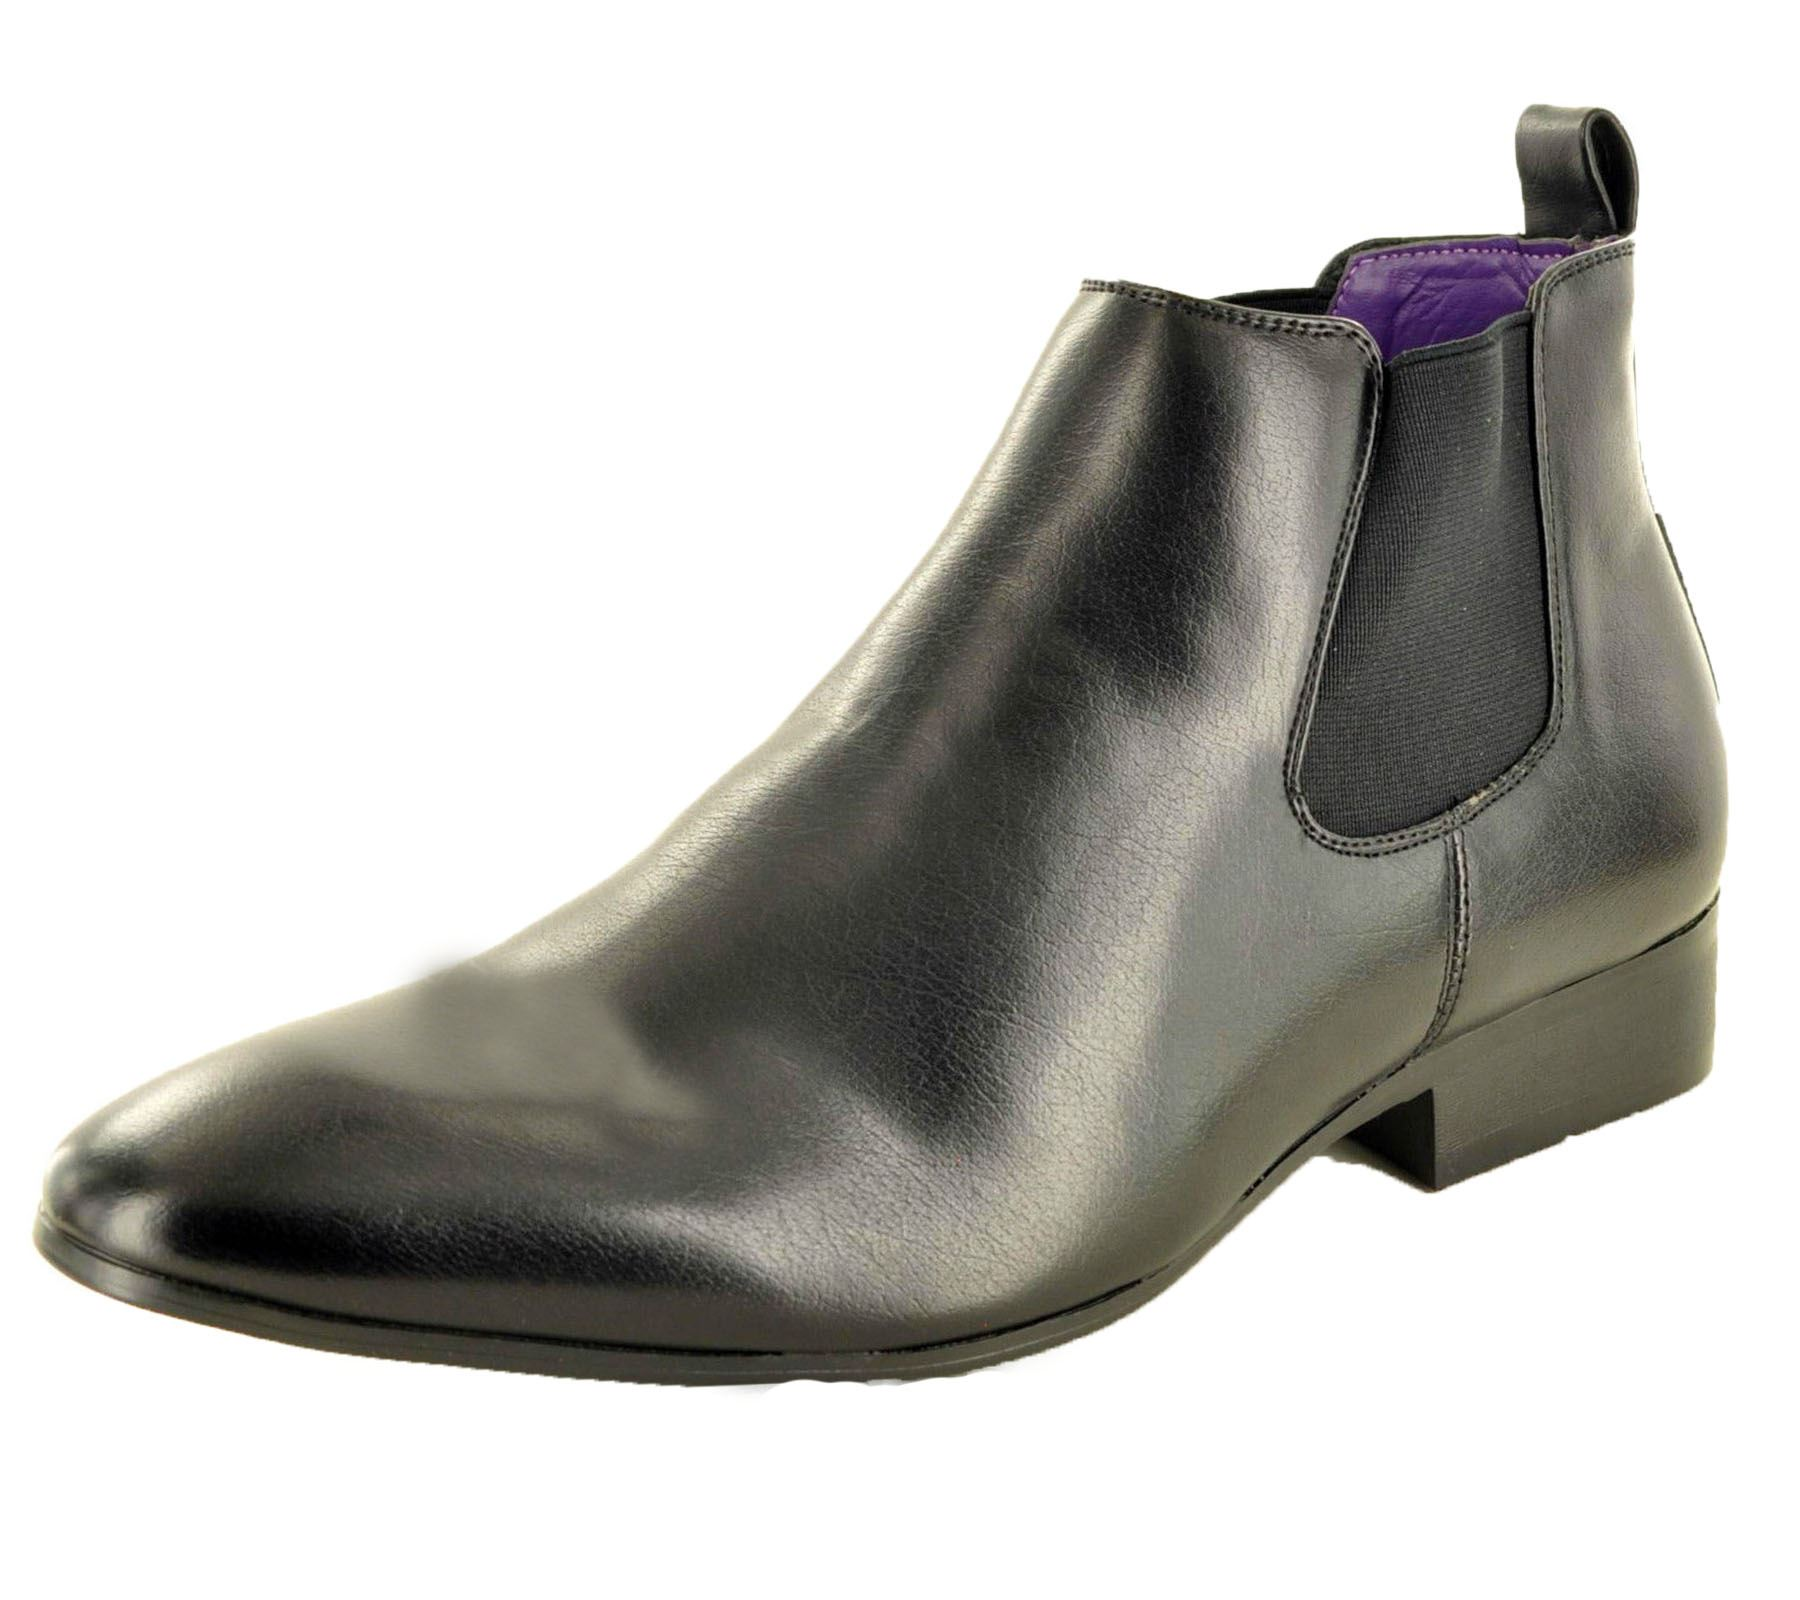 Mens-Chelsea-Boots-High-Top-Gusset-Synthetic-Leather-Shoes thumbnail 7